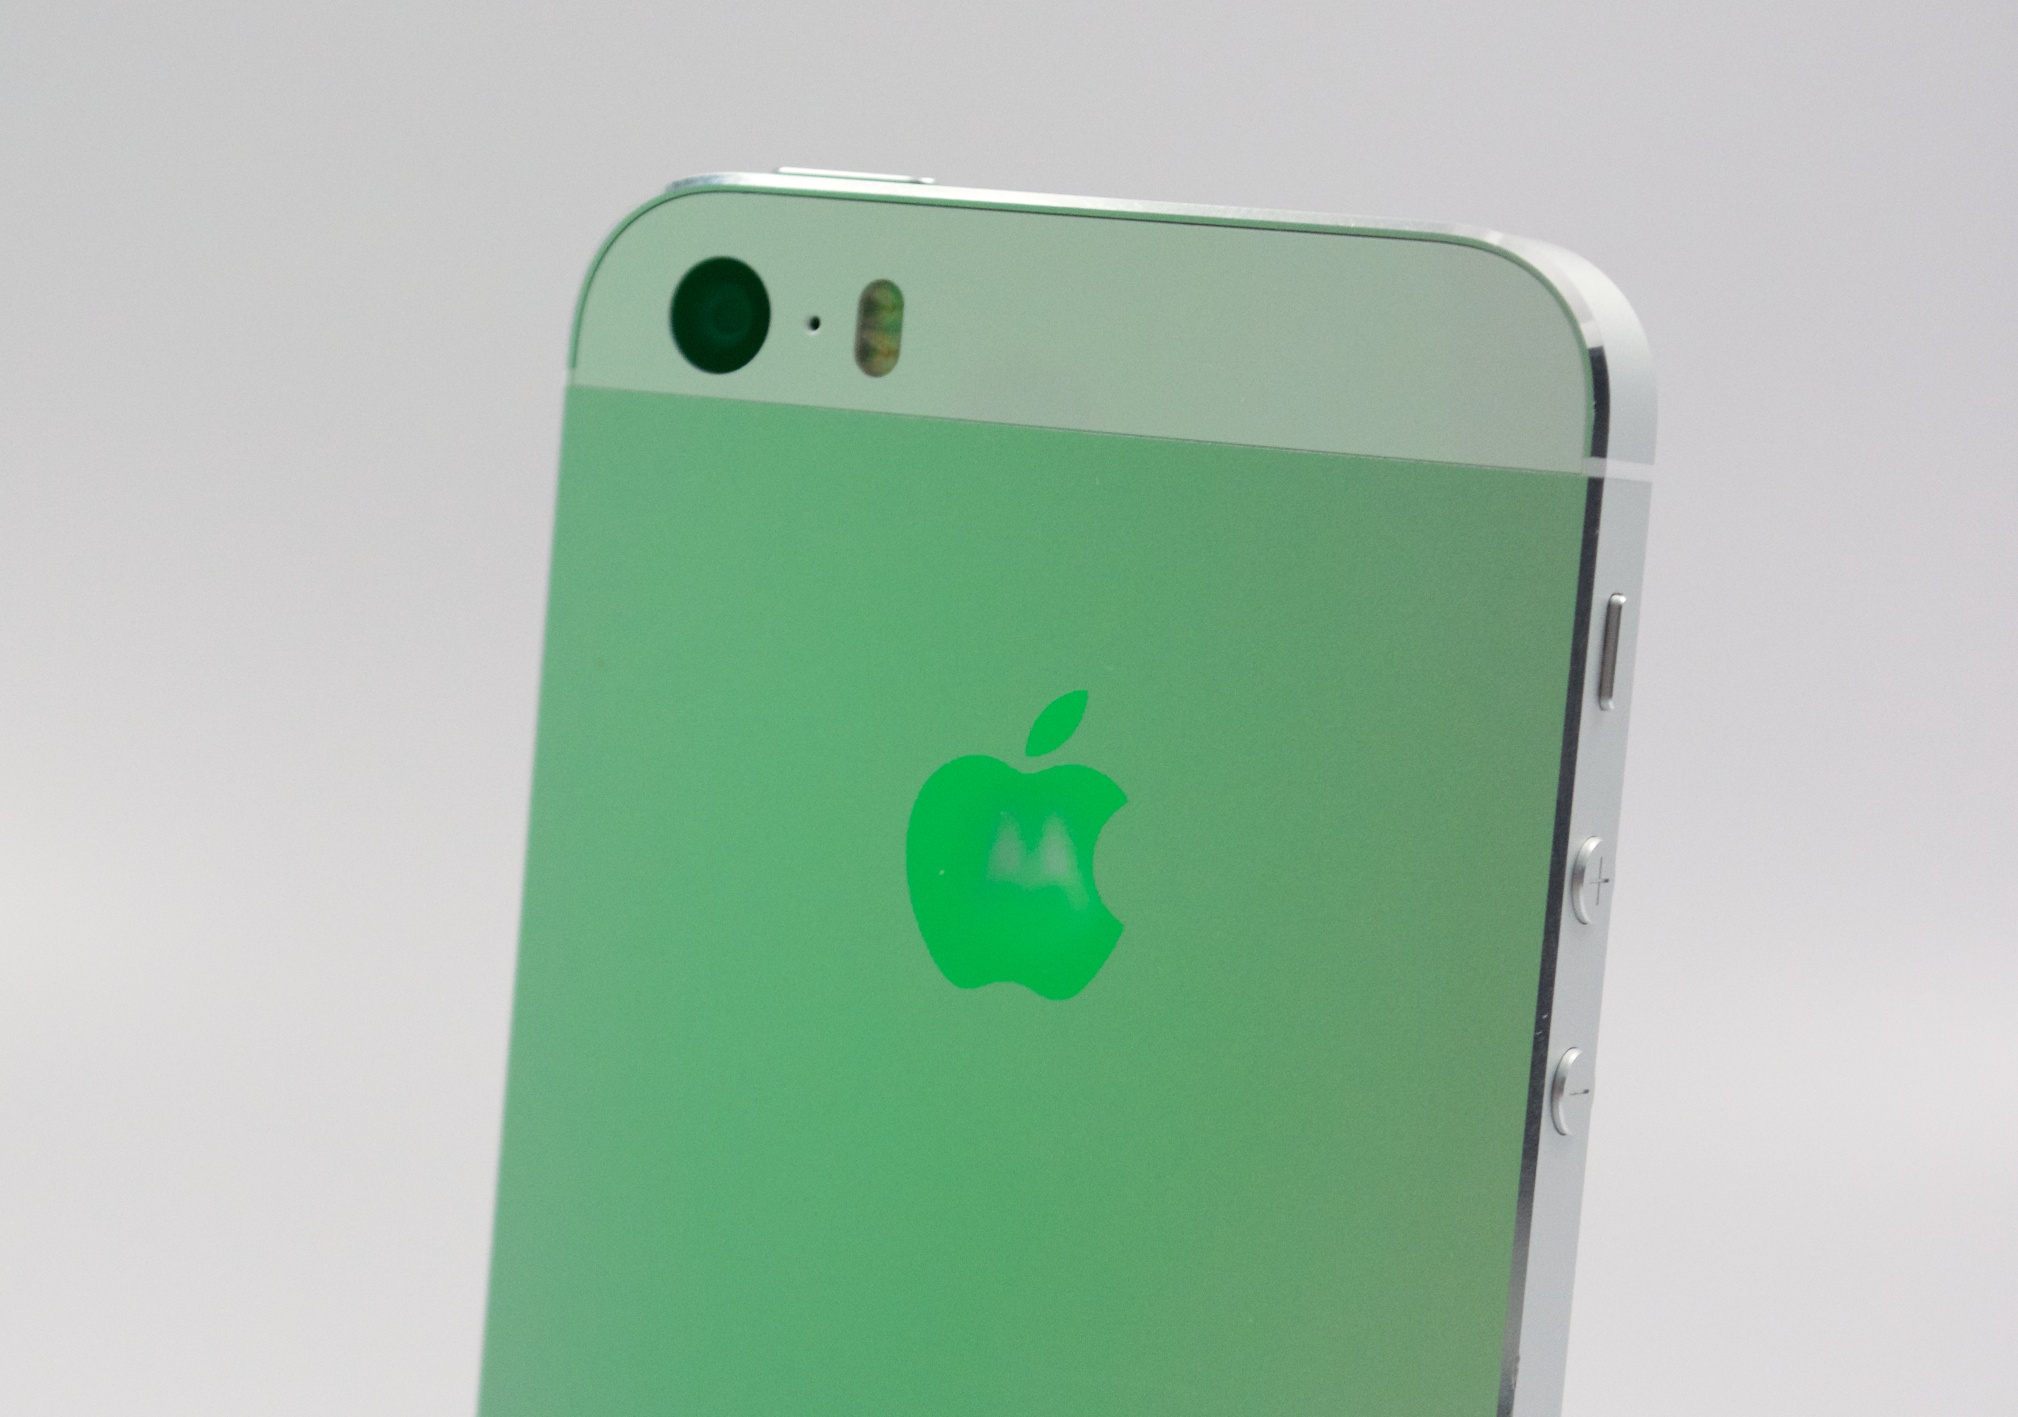 Iphone 6 release and feature rumor roundup for Iphone 5 features friday rumor roundup